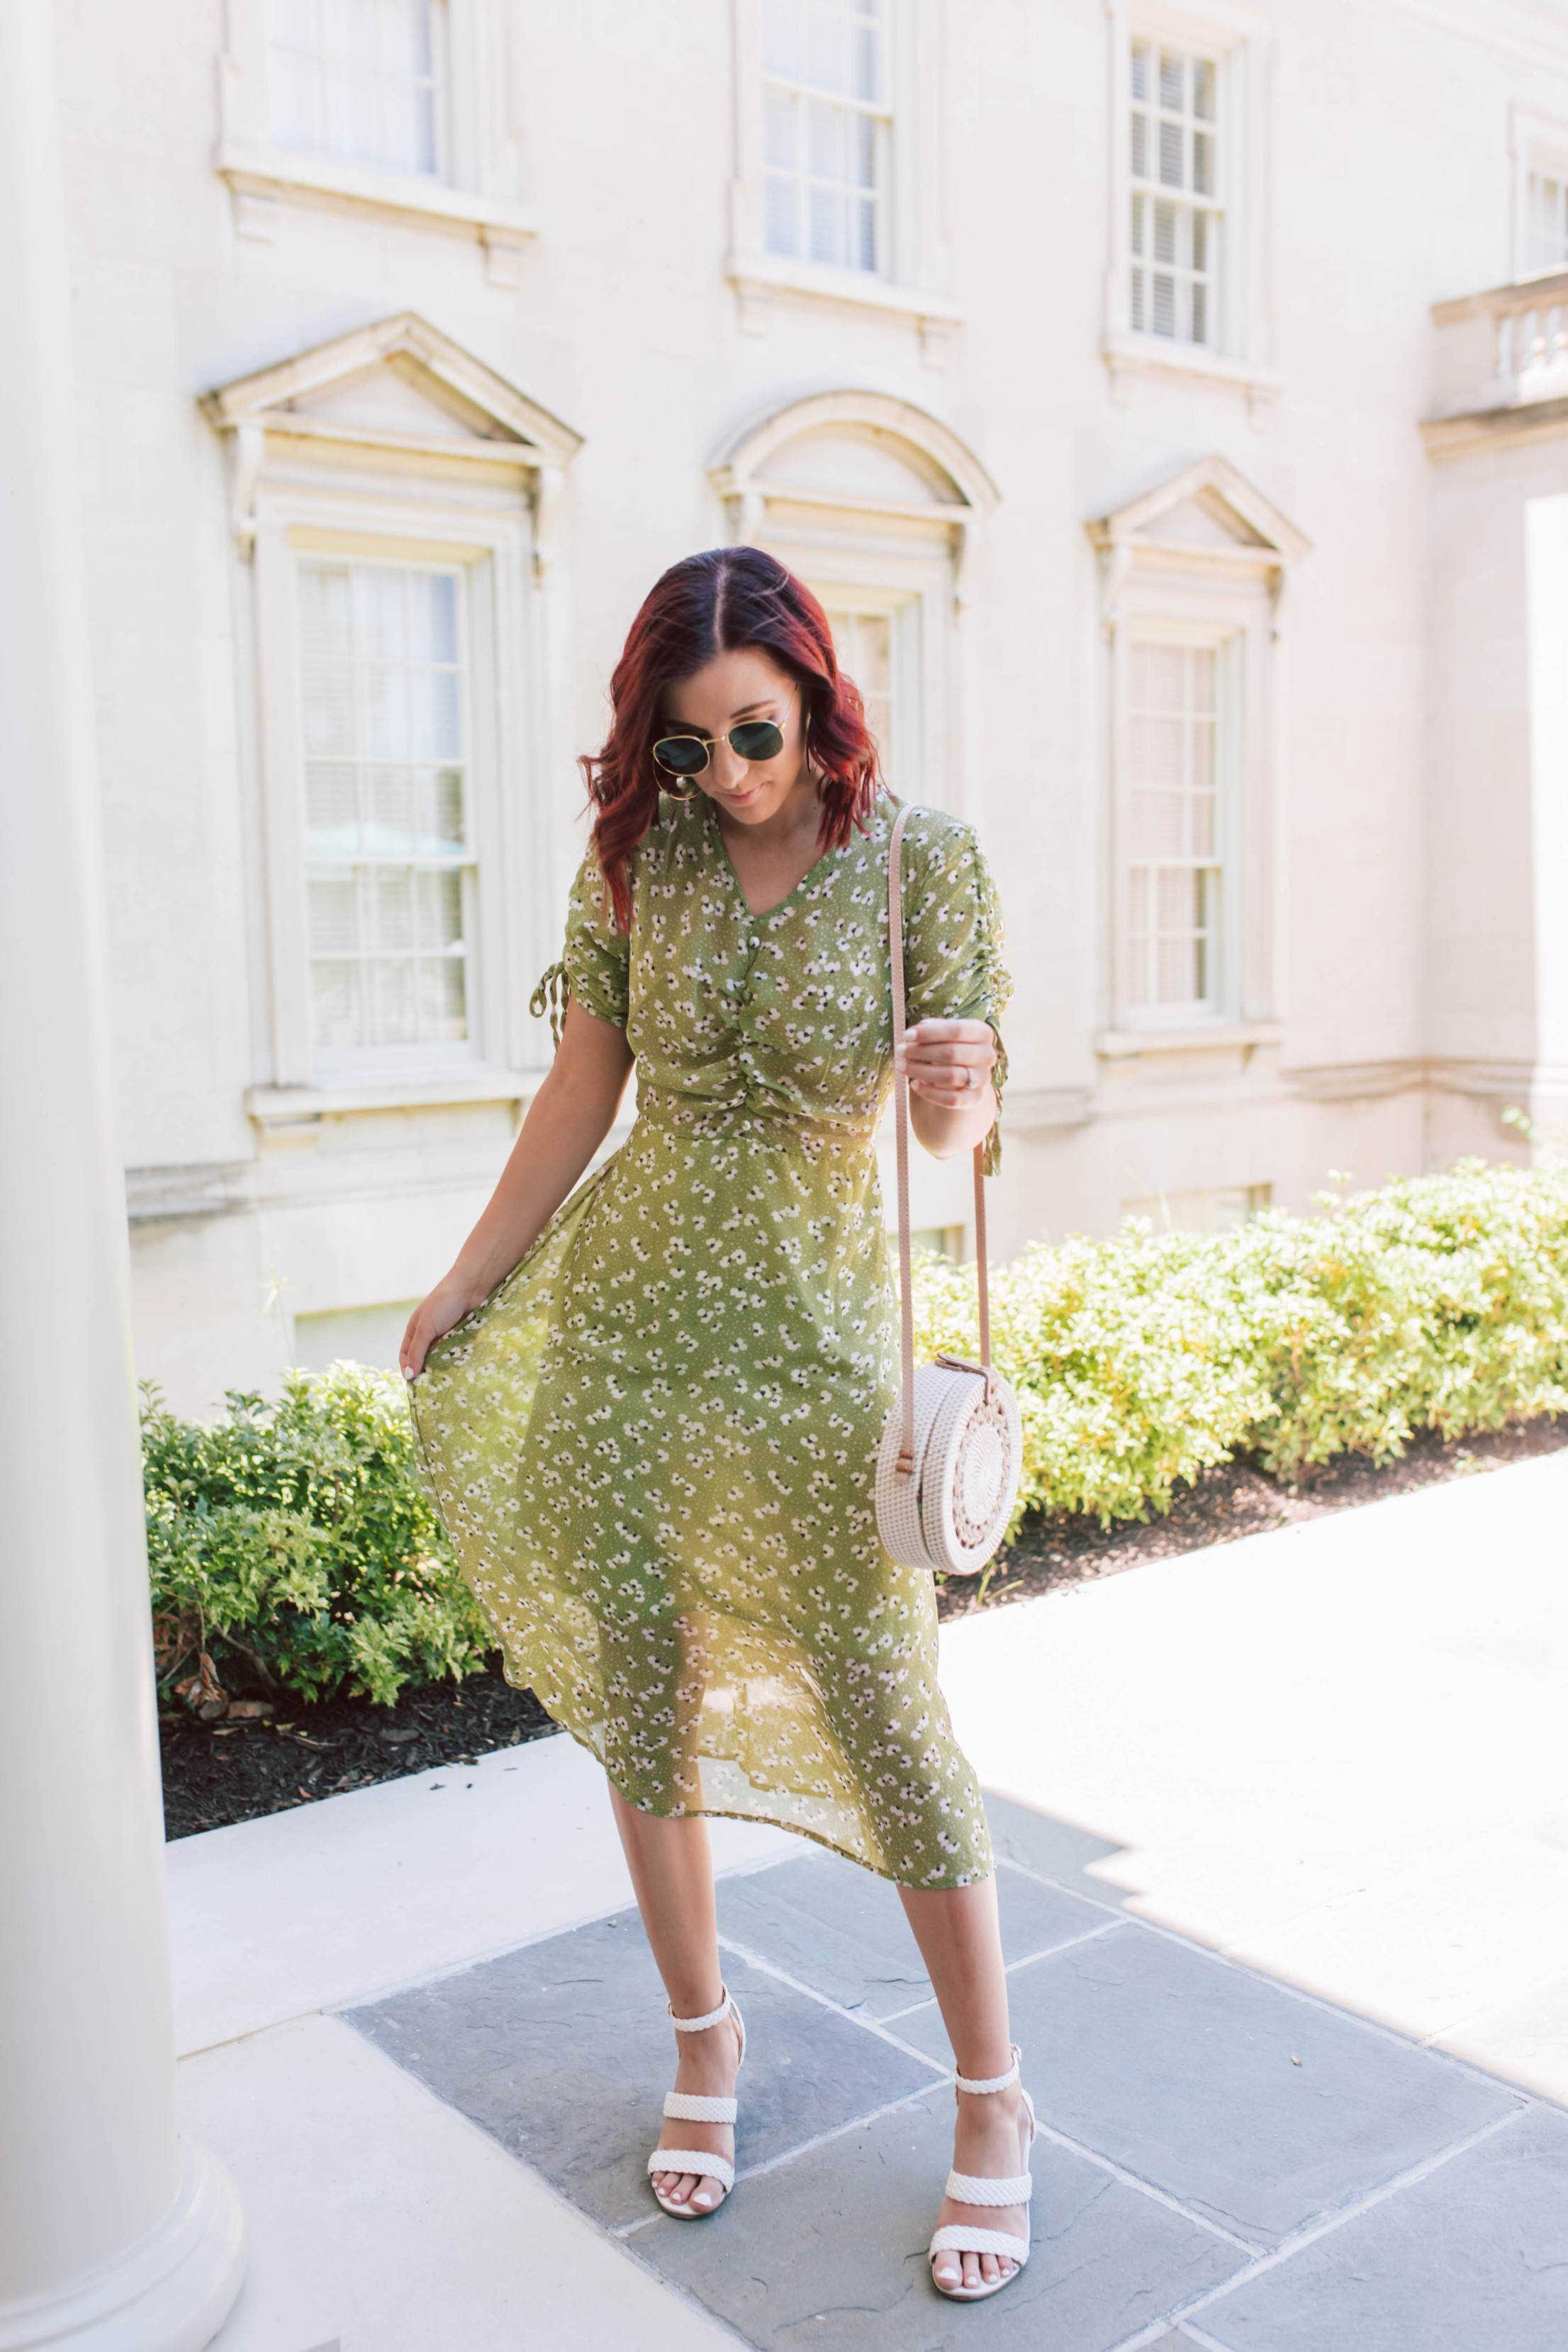 The Comfiest Retro Summer Sundress | She Saw Style